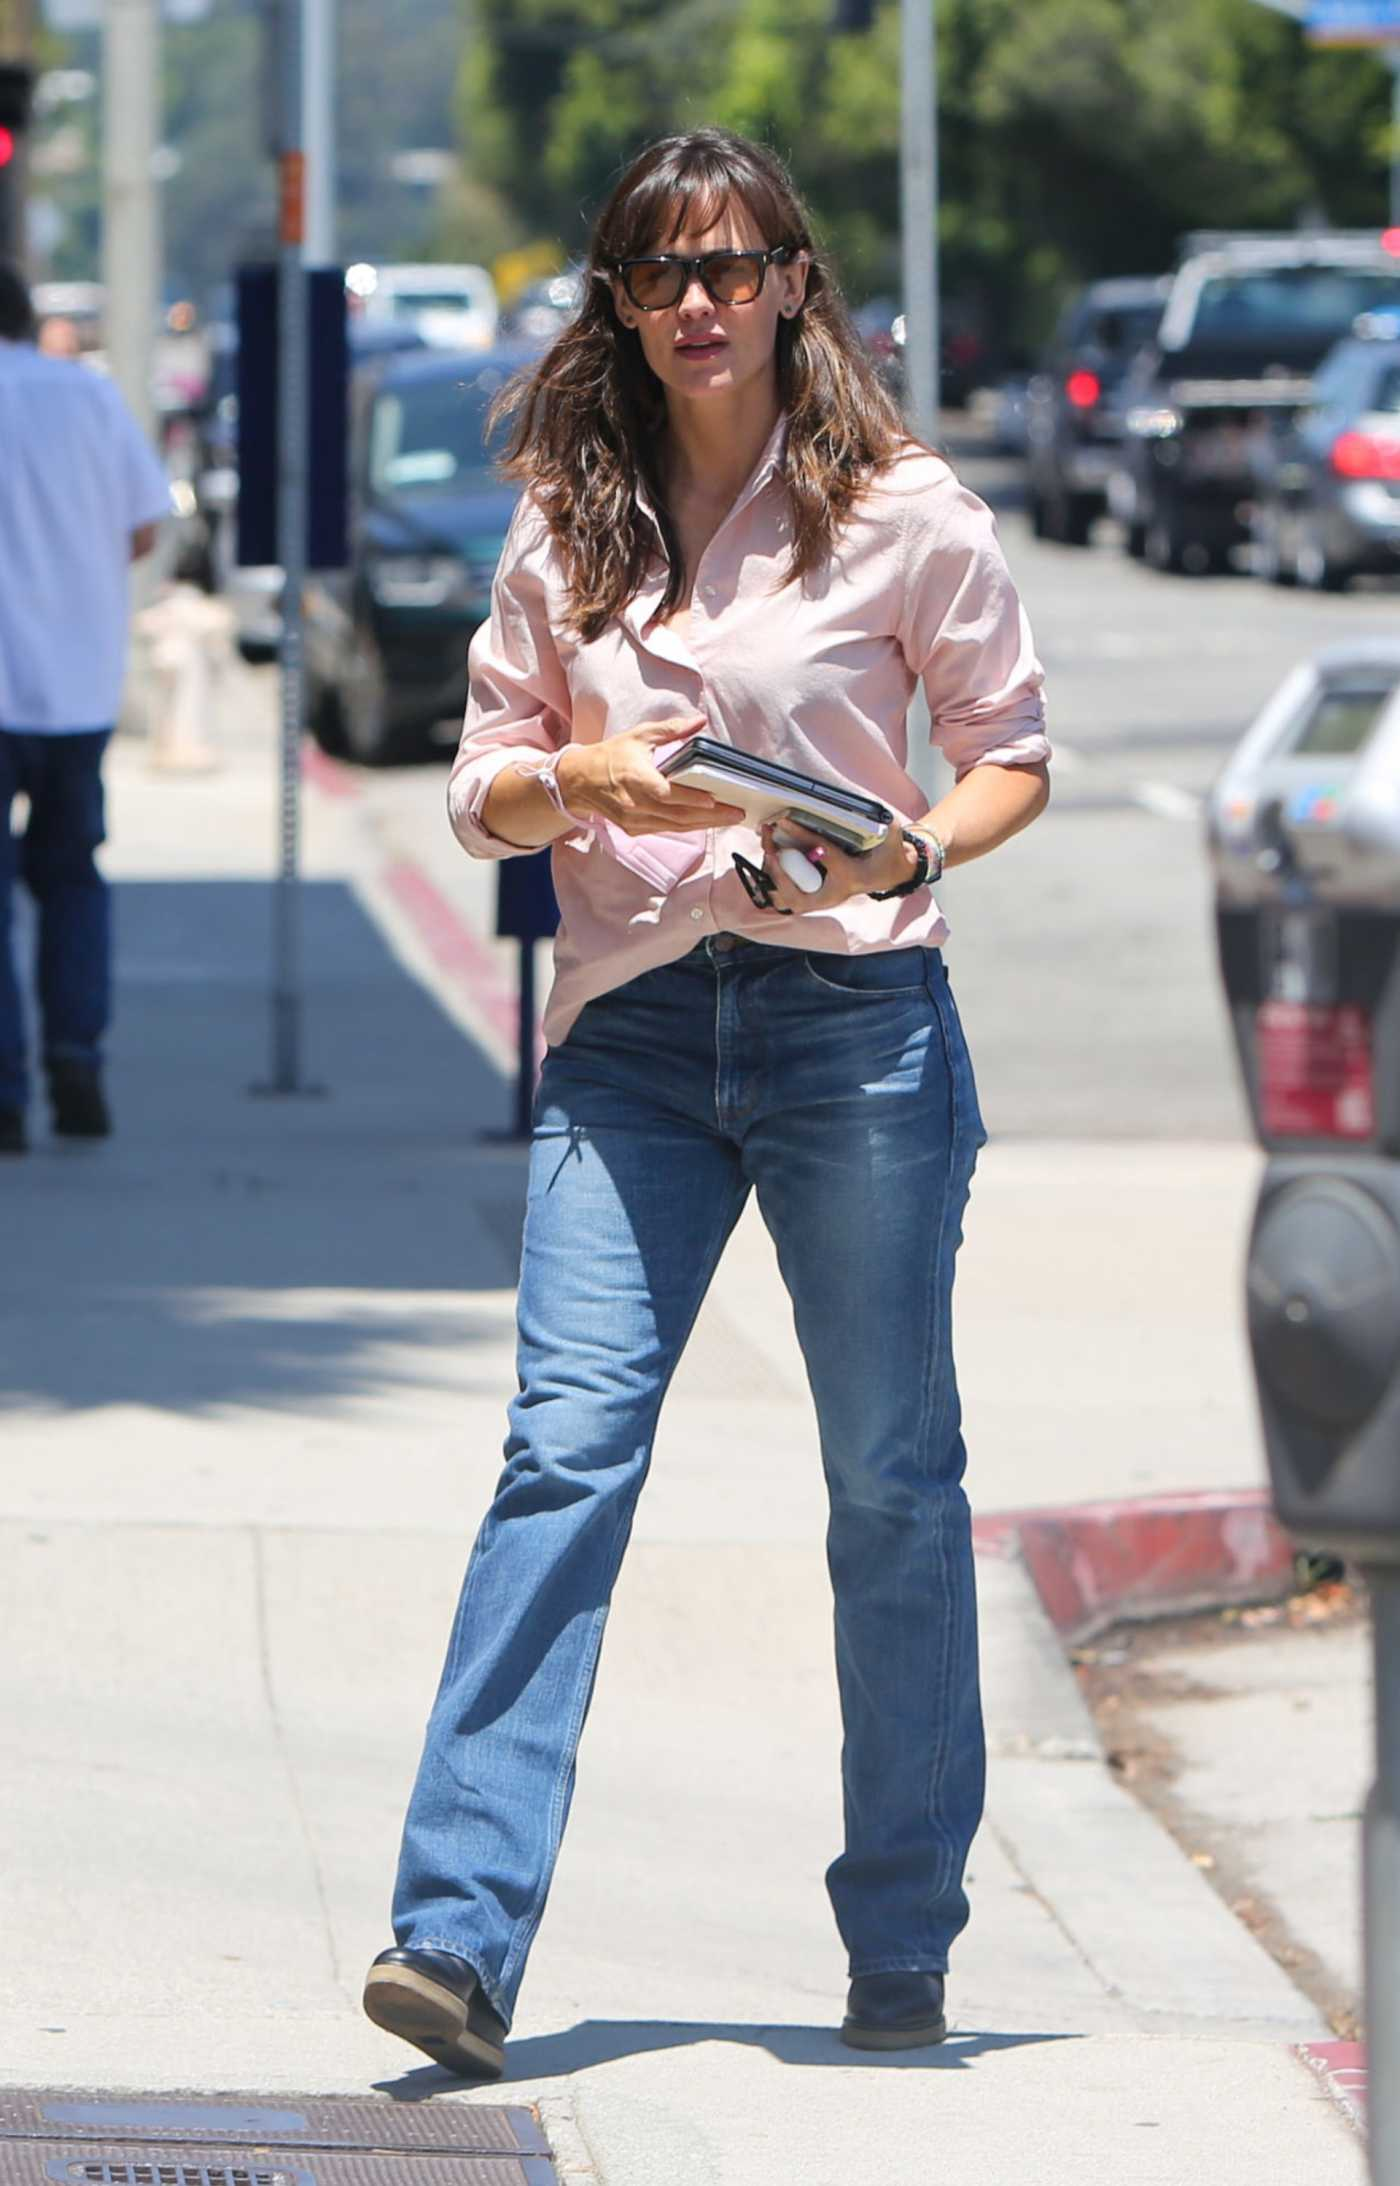 Jennifer Garner in a Pink Shirt Was Seen Out in Los Angeles 07/30/2021